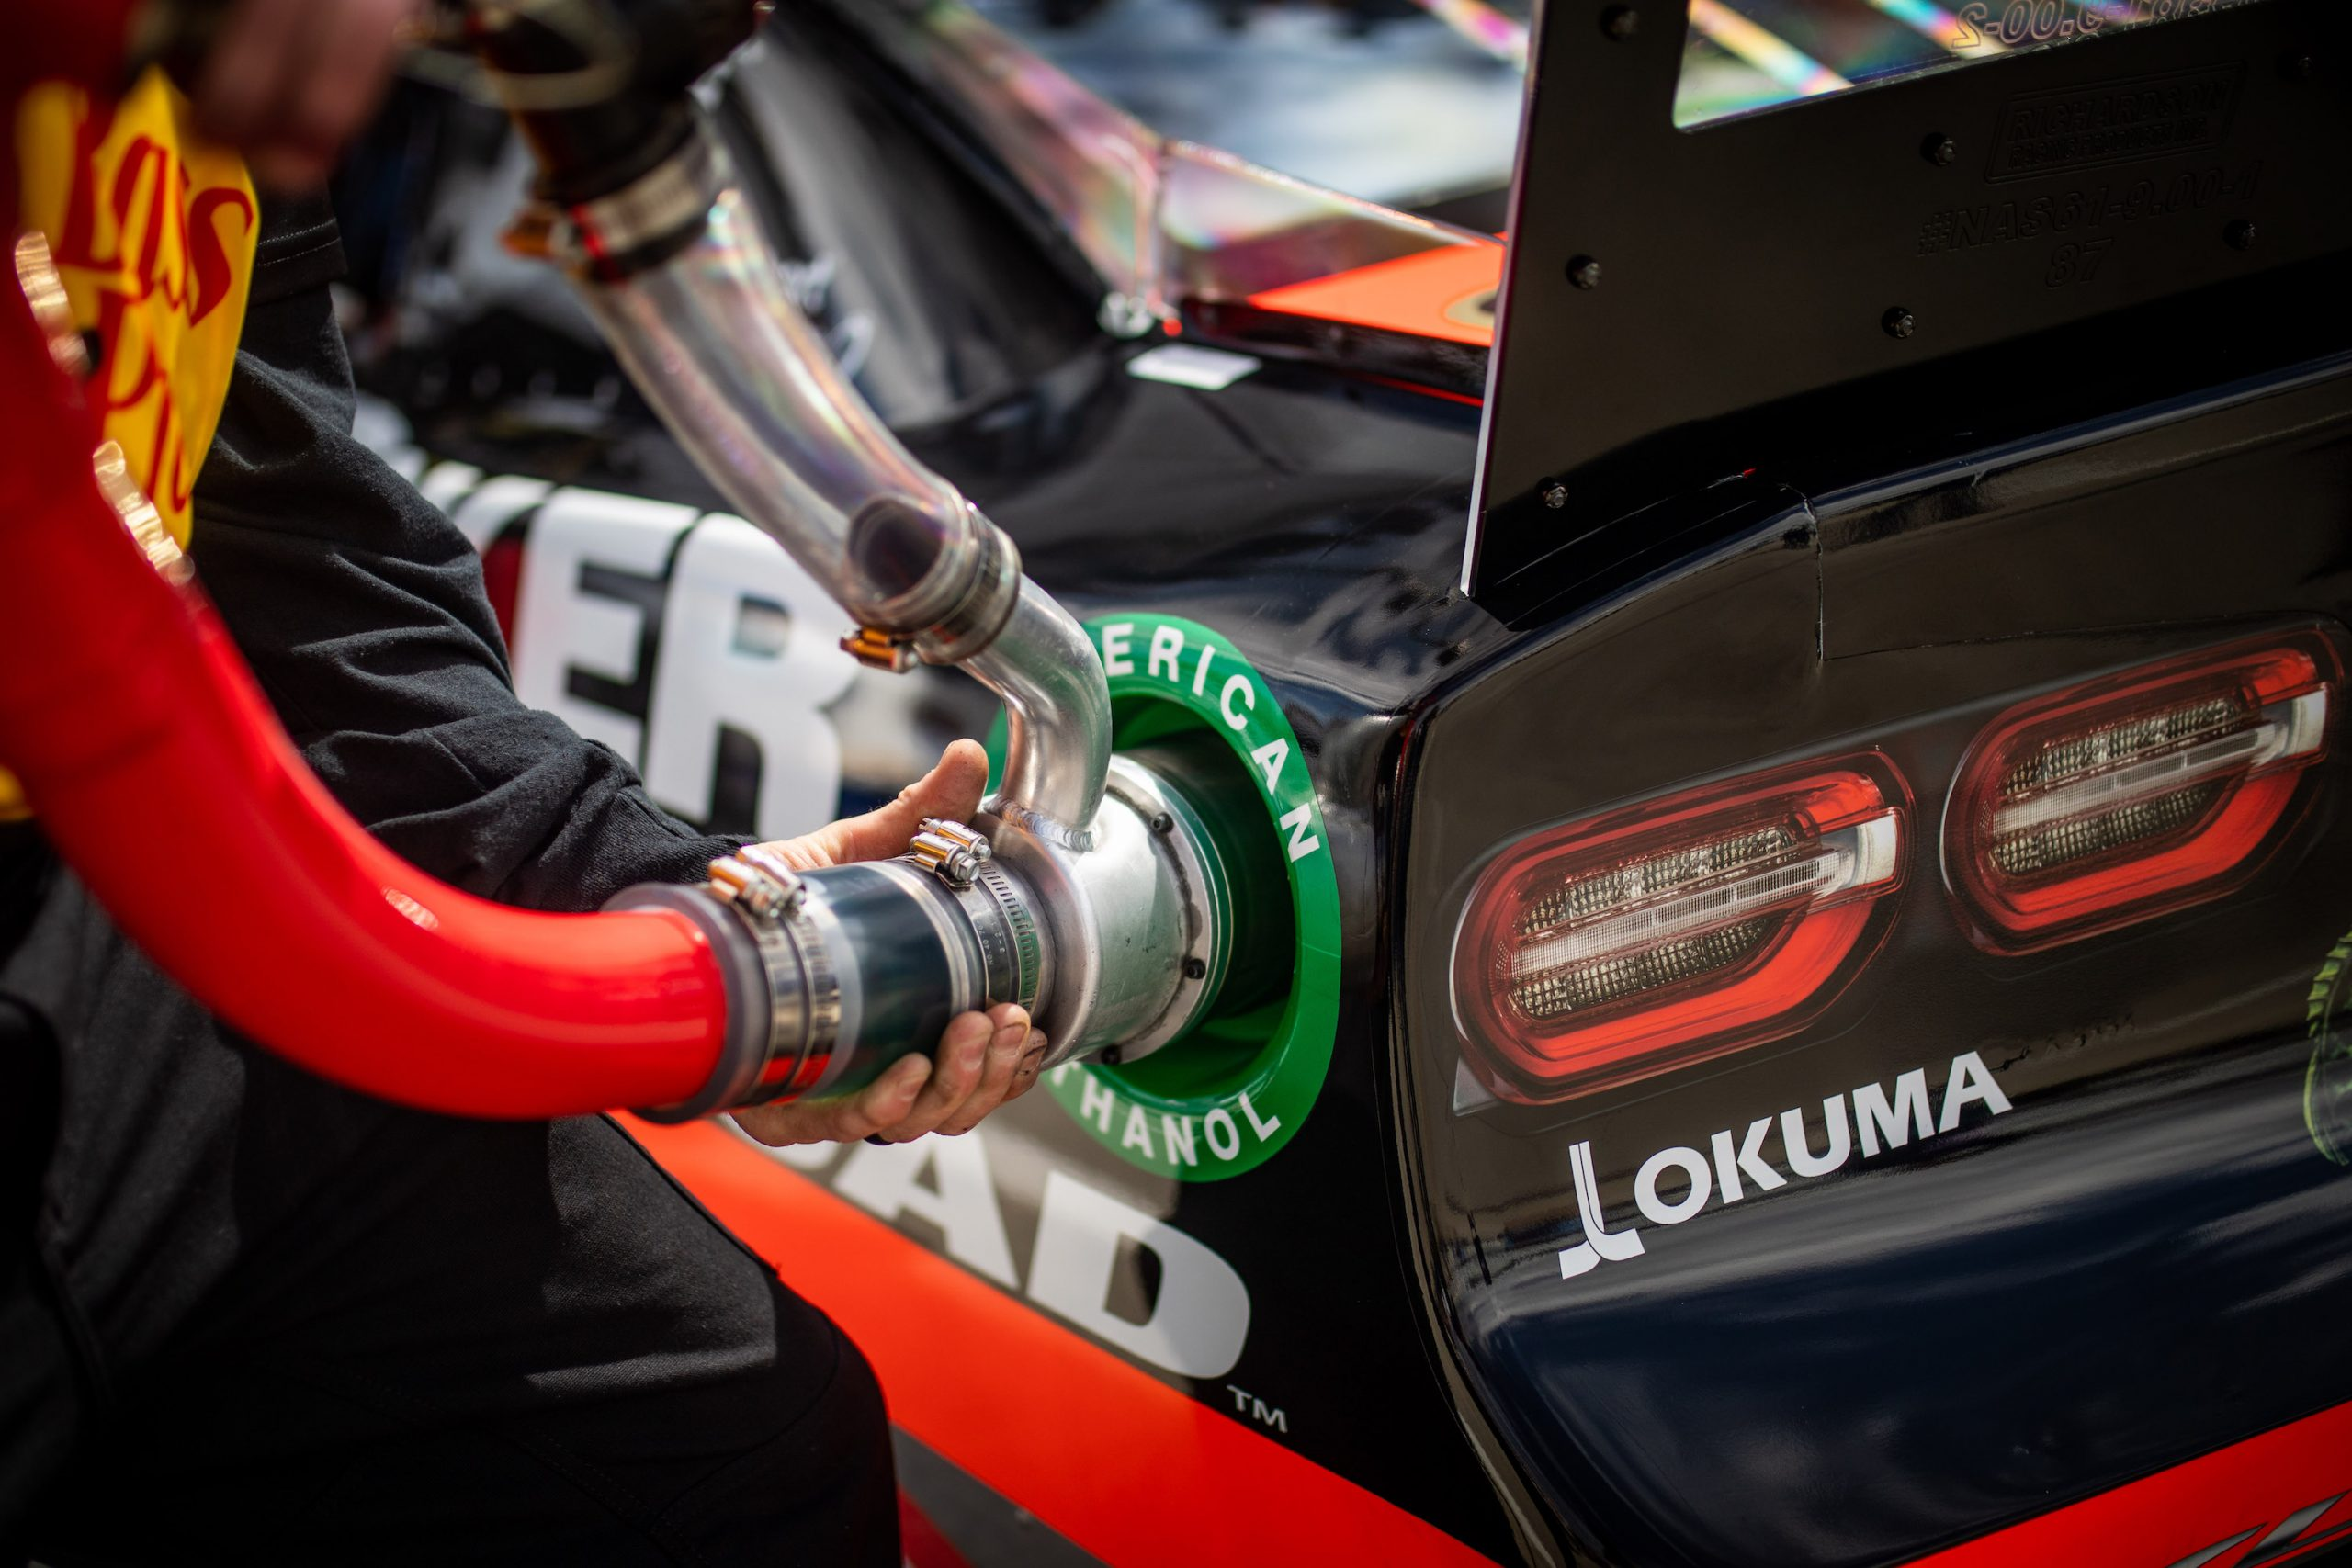 Daytona Race Car Fueling